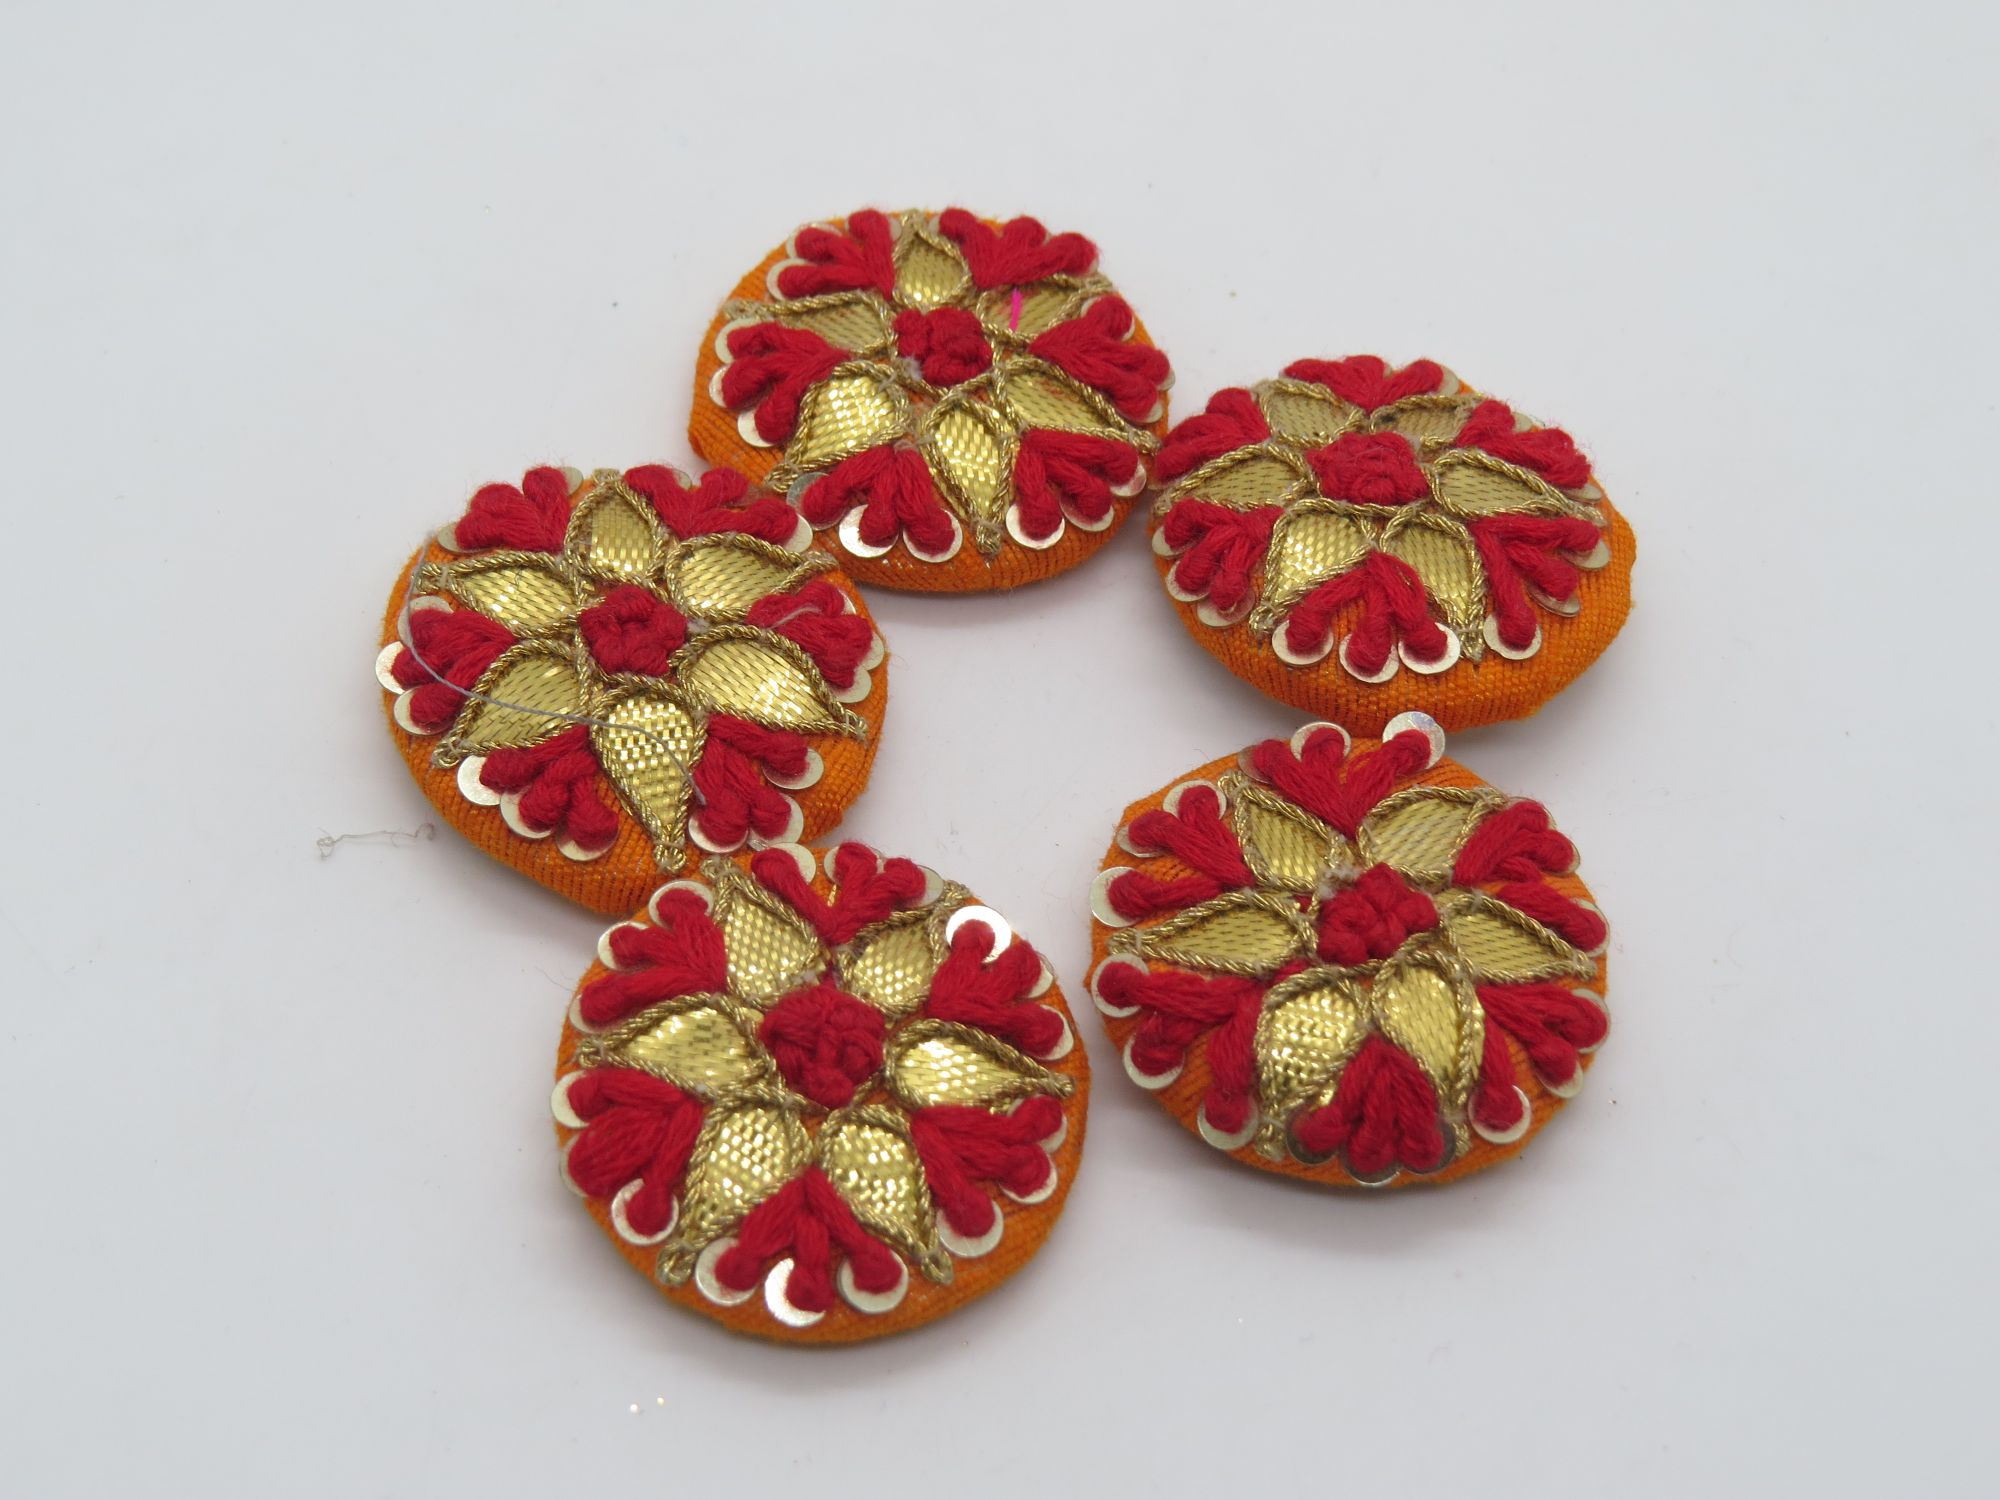 Hand Thred Gota Patti work Embellishment Button Indian Fancy Gota Pattidesmaids Design Decorative Hand Crafted Fabric Thread Work Sewing Buttons